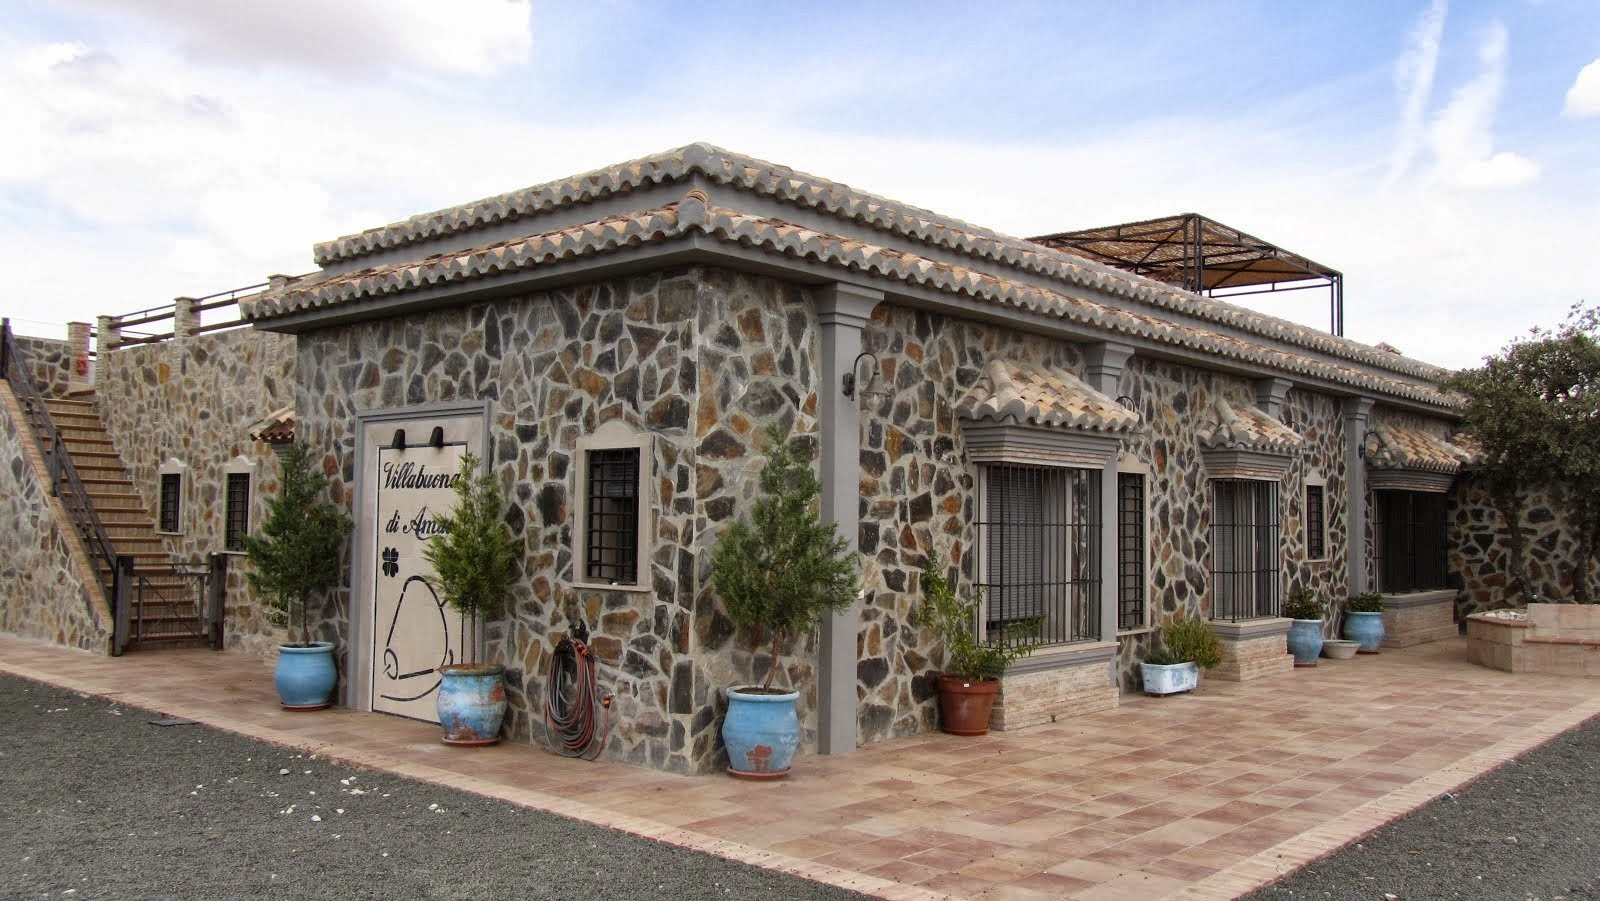 Casa rural Villabuona